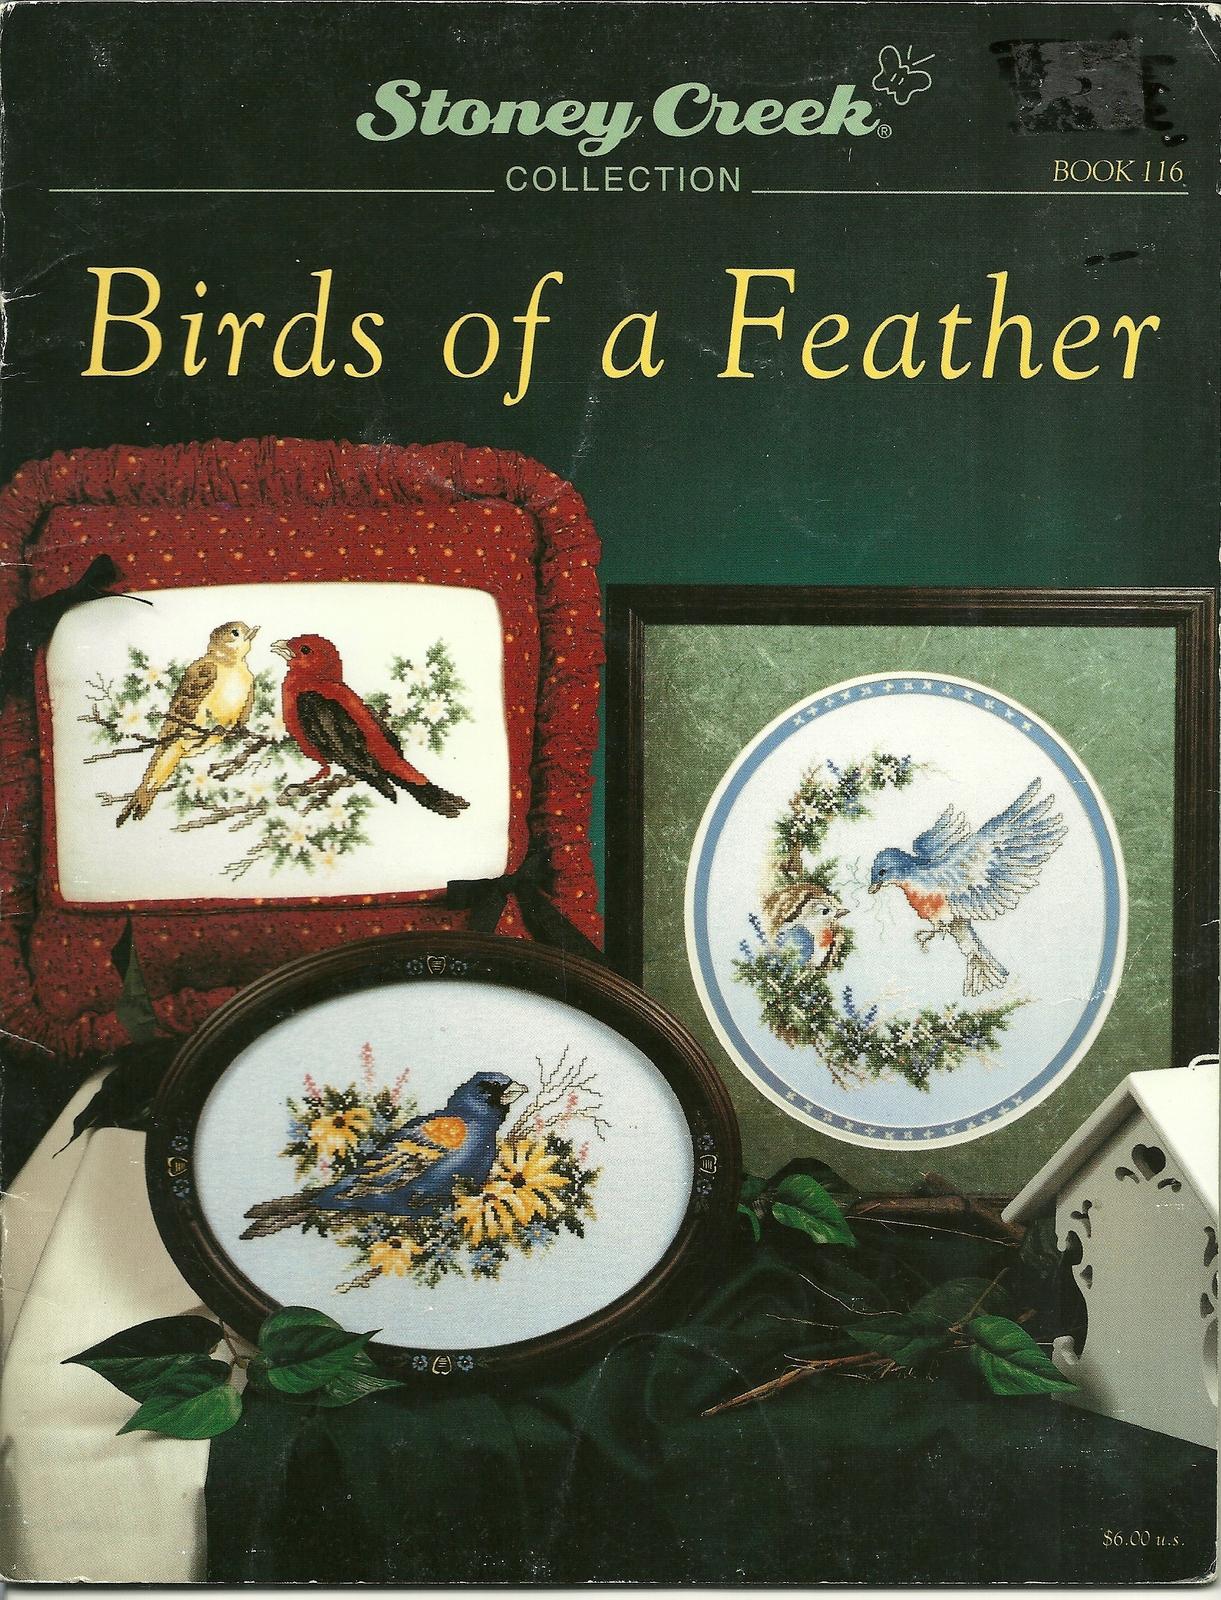 Birds of a feather cross stitch pattern book 116 stoney creek collection  1